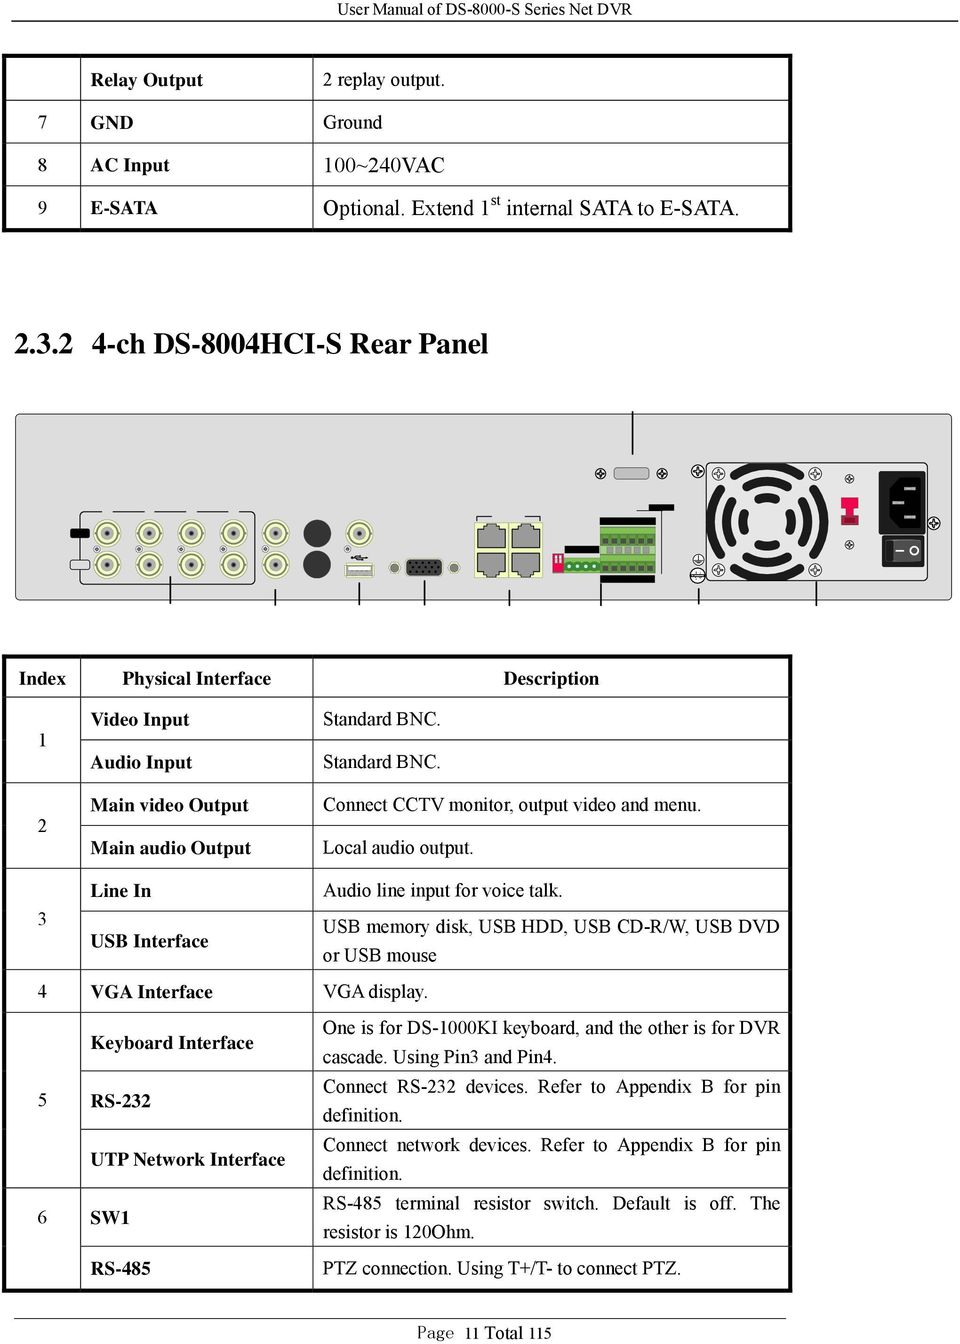 DS-8000-S Series Net DVR  User Manual (V2 0) - PDF